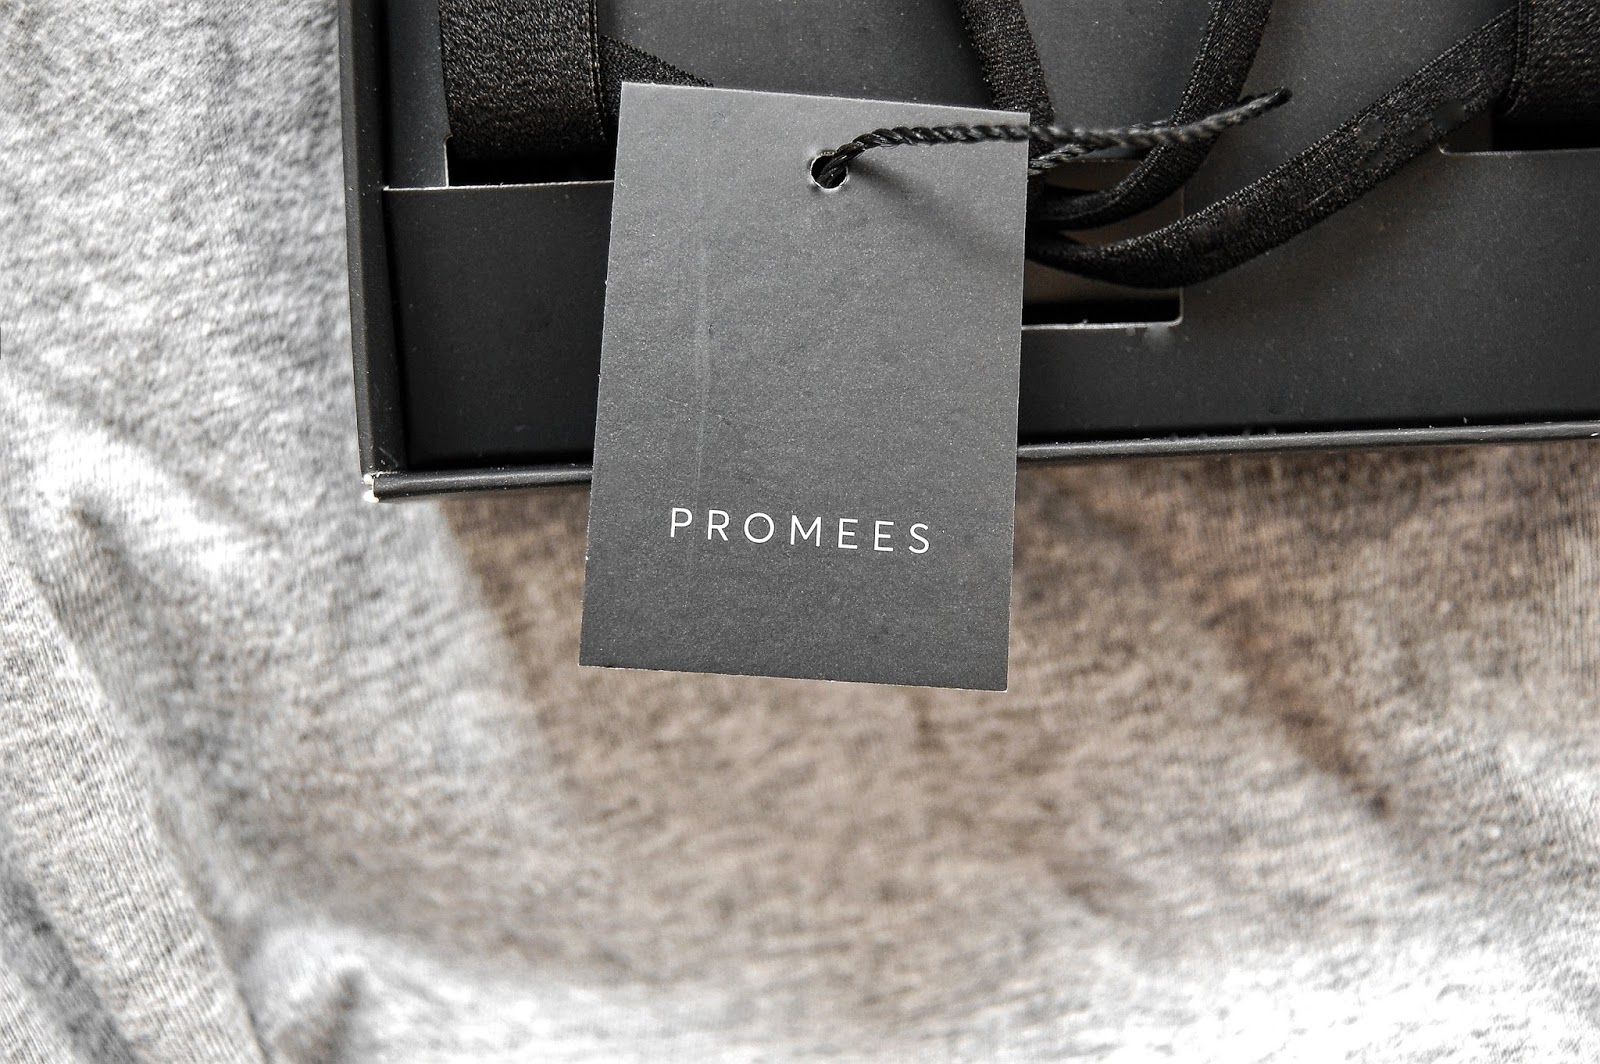 90f512892e298a Promees | Promees Instagram | Promees Facebook